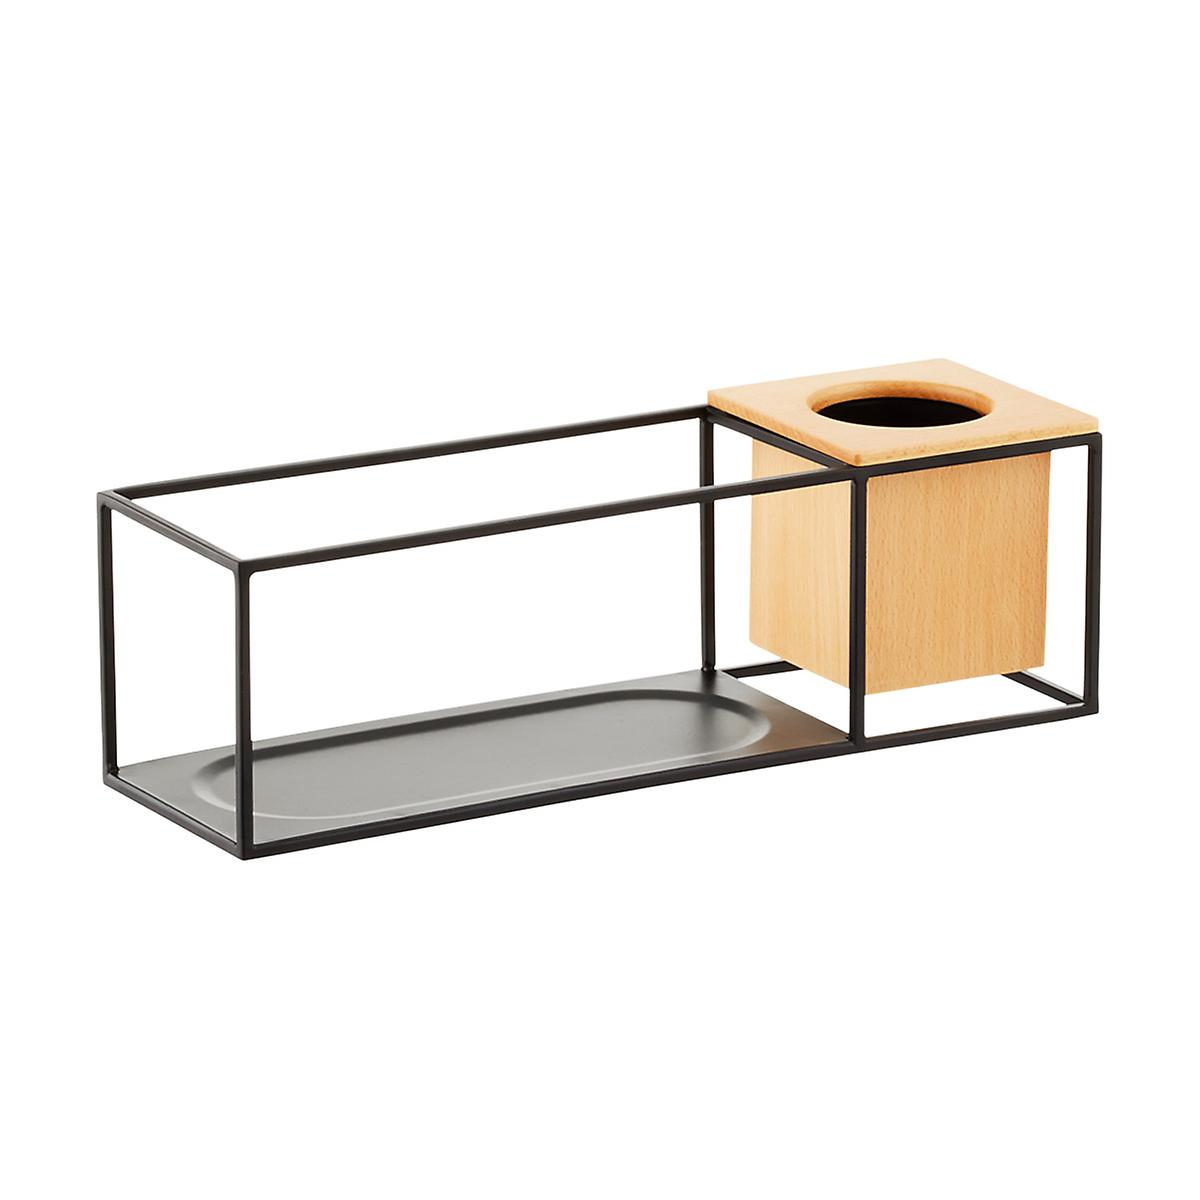 Umbra Small Cubist Wall Shelf The Container Store